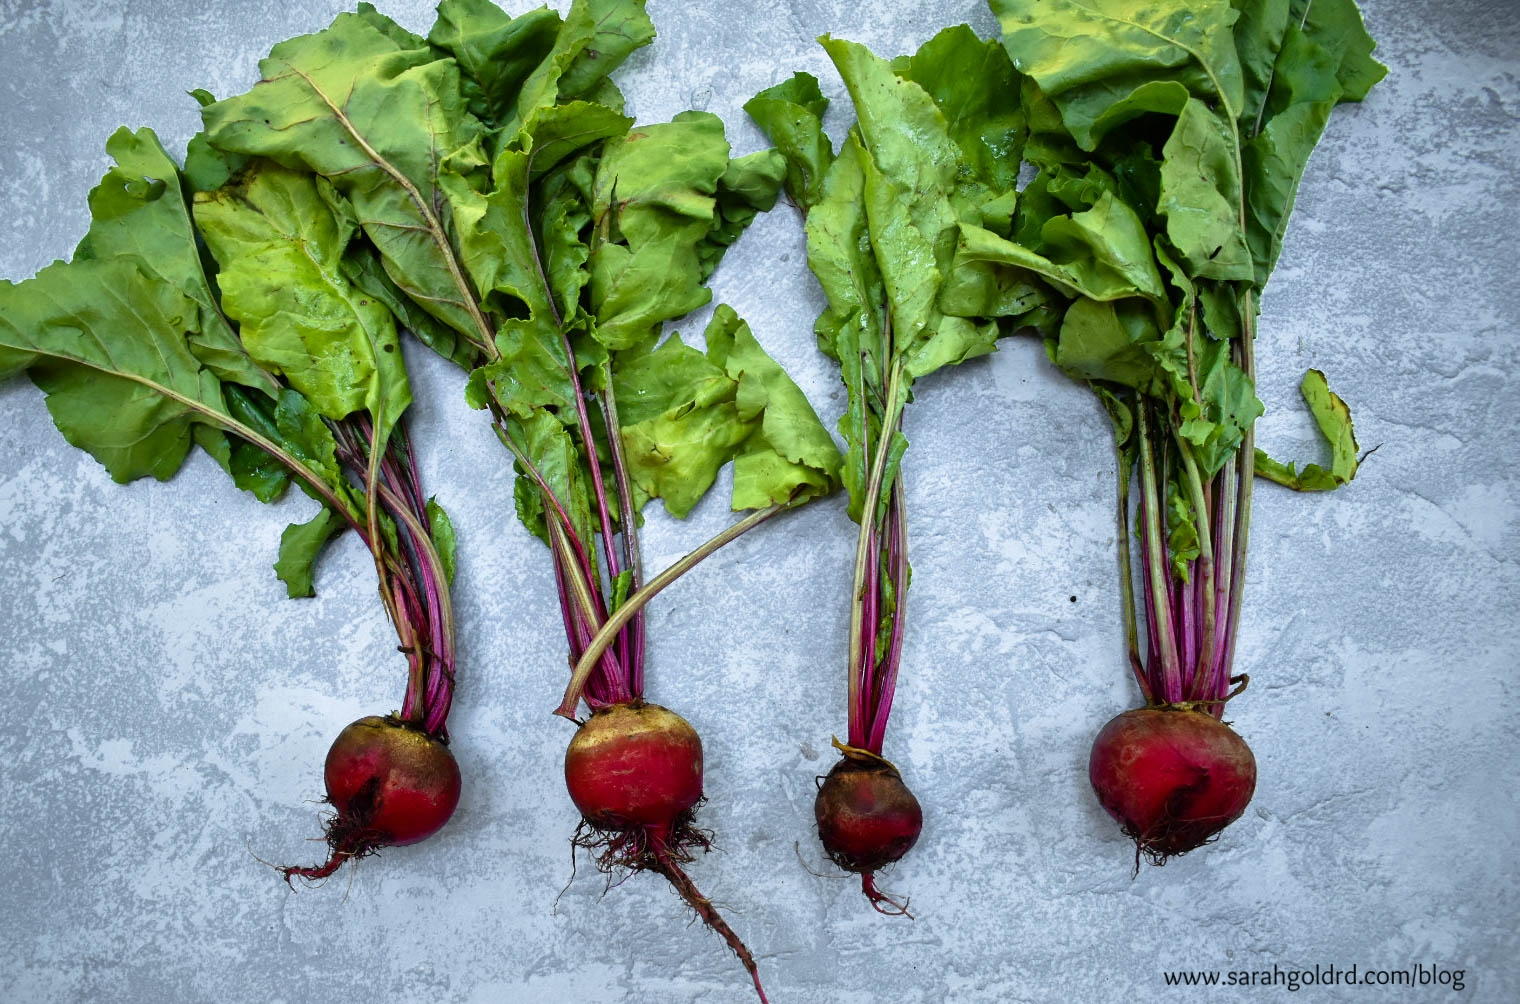 chioggia beets with greens.jpg